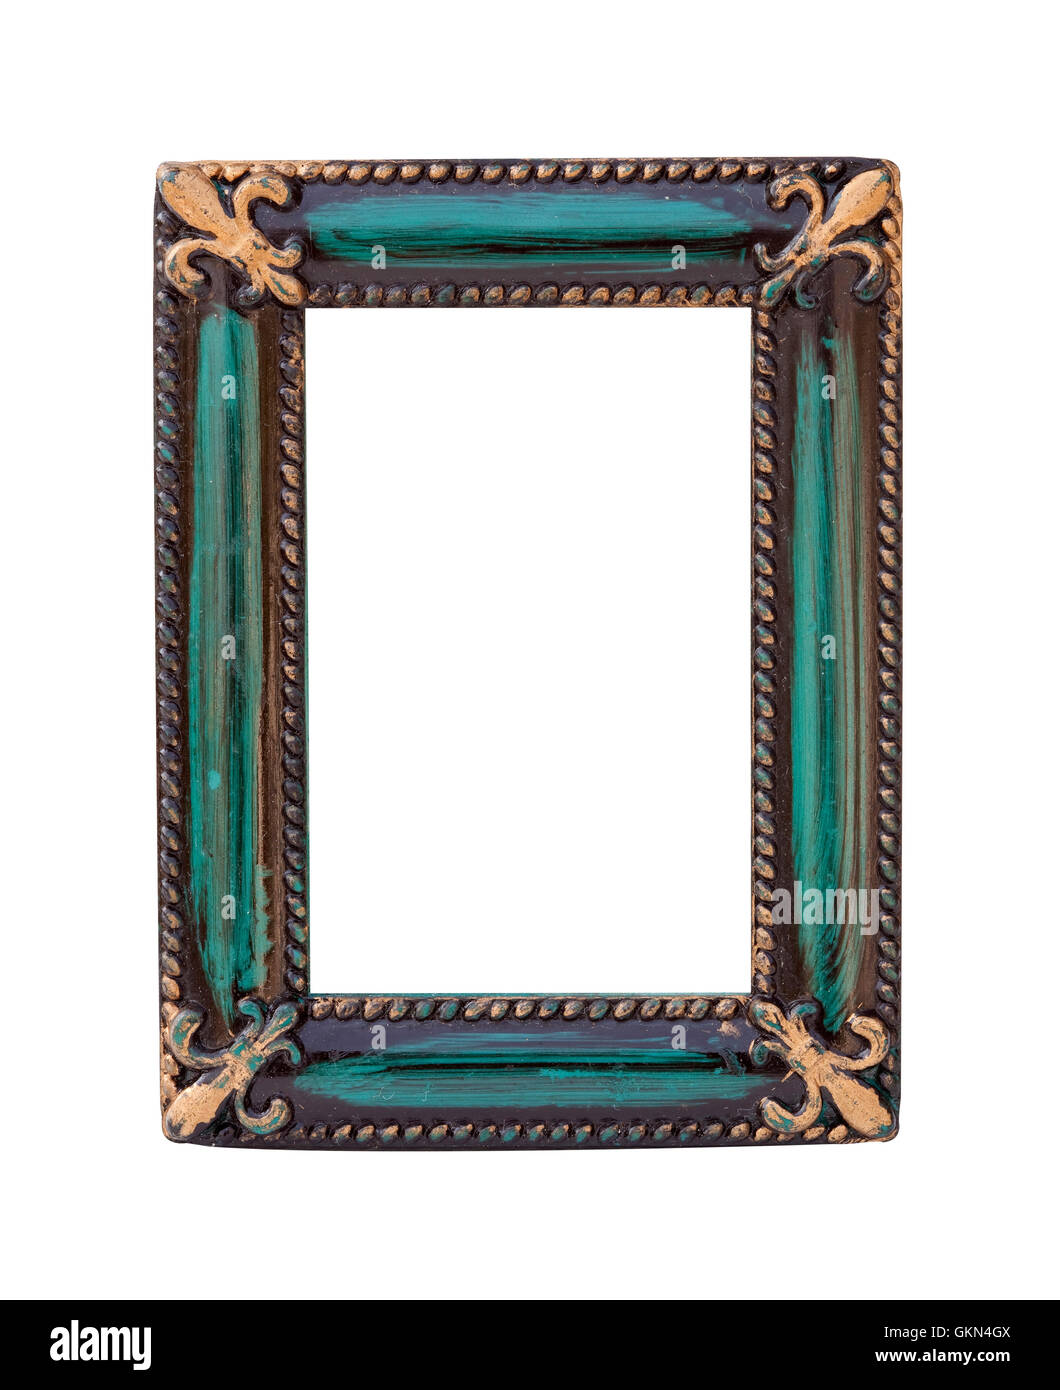 vintage frame on white background with clipping path - Stock Image